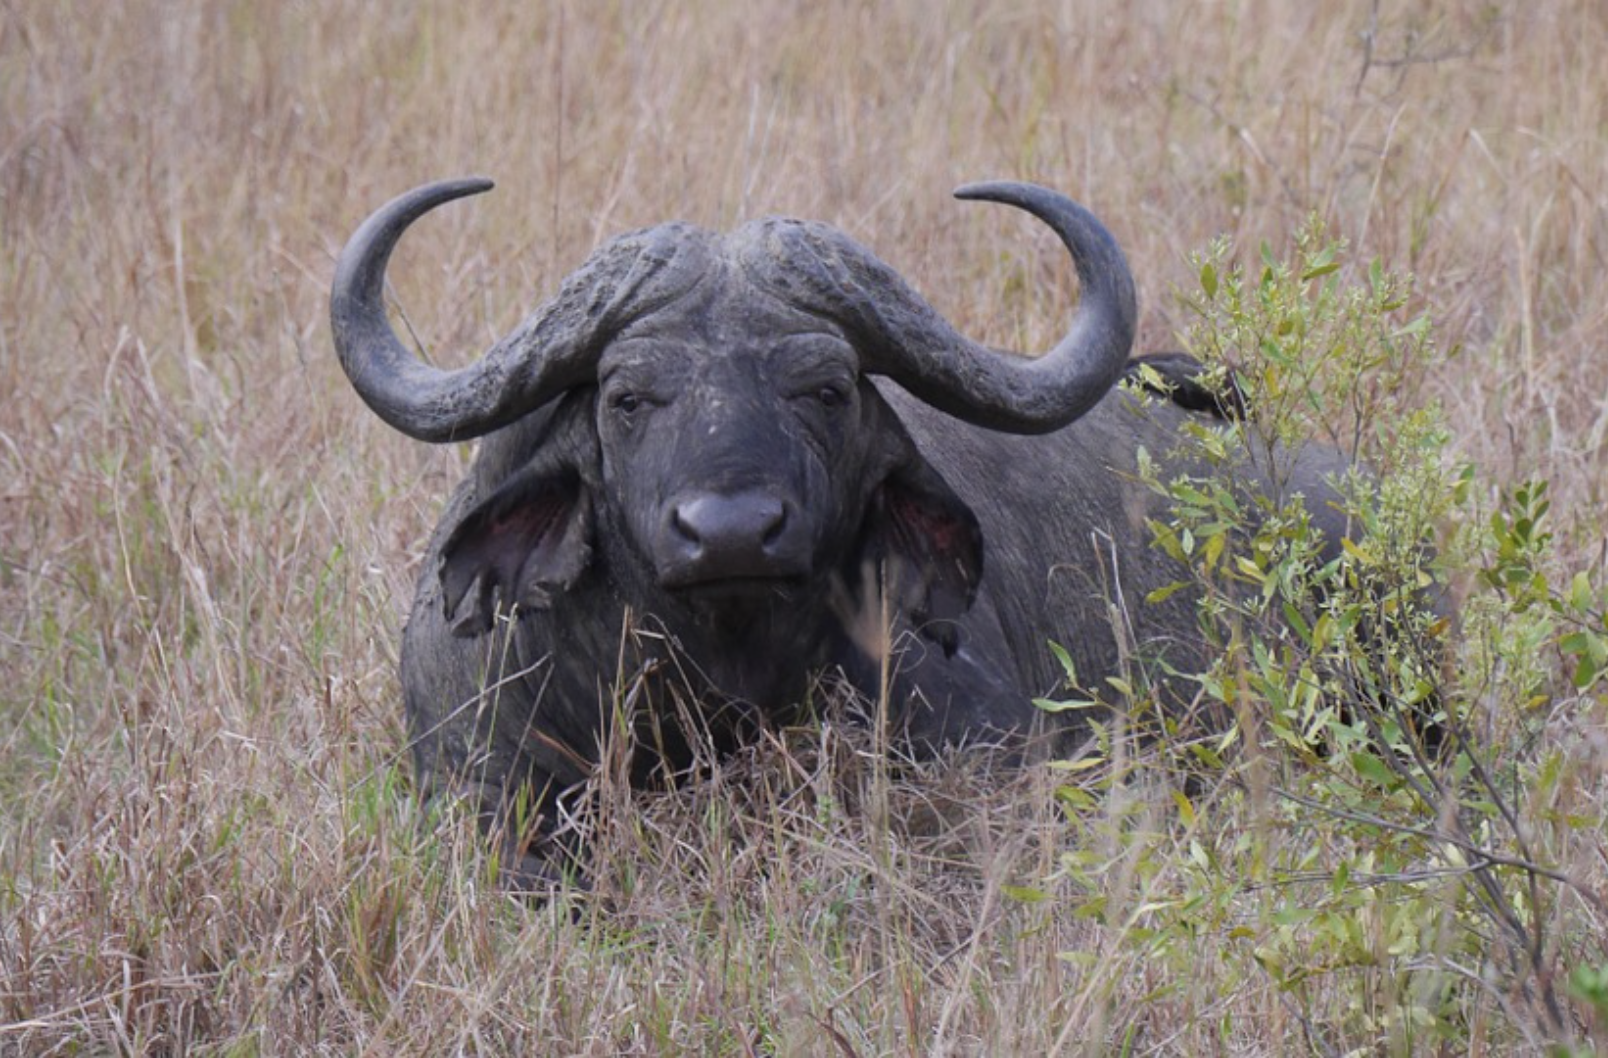 An African buffalo with big horns standing in the field in South Africa